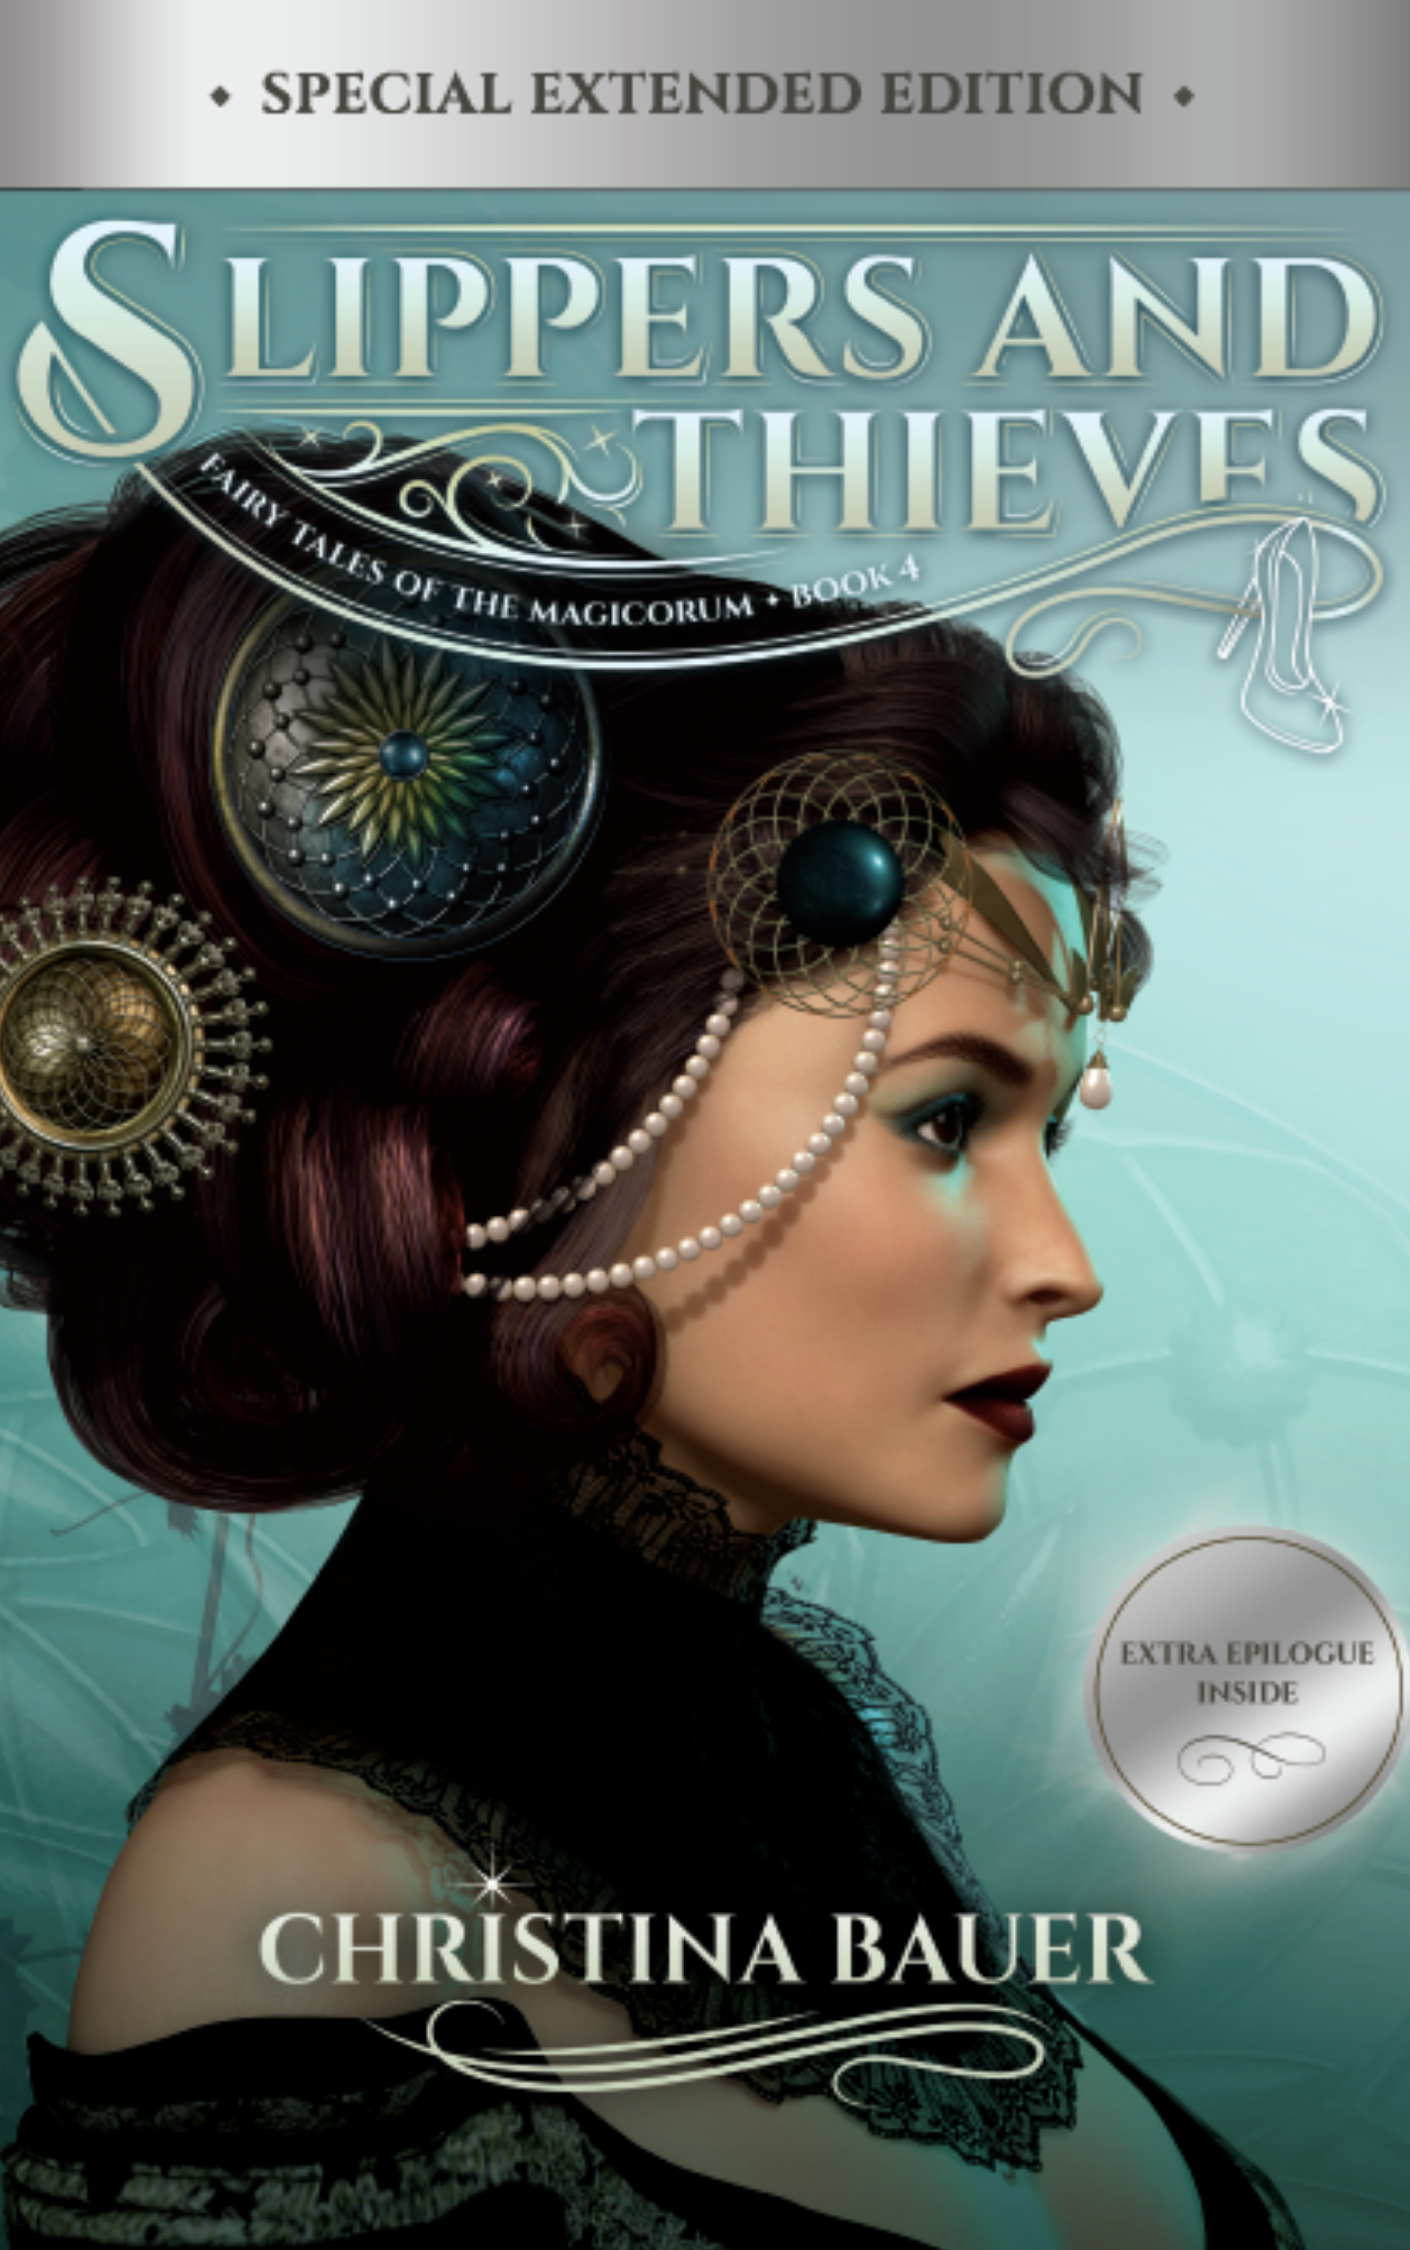 SLIPPERS AND THIEVES (Book 4)